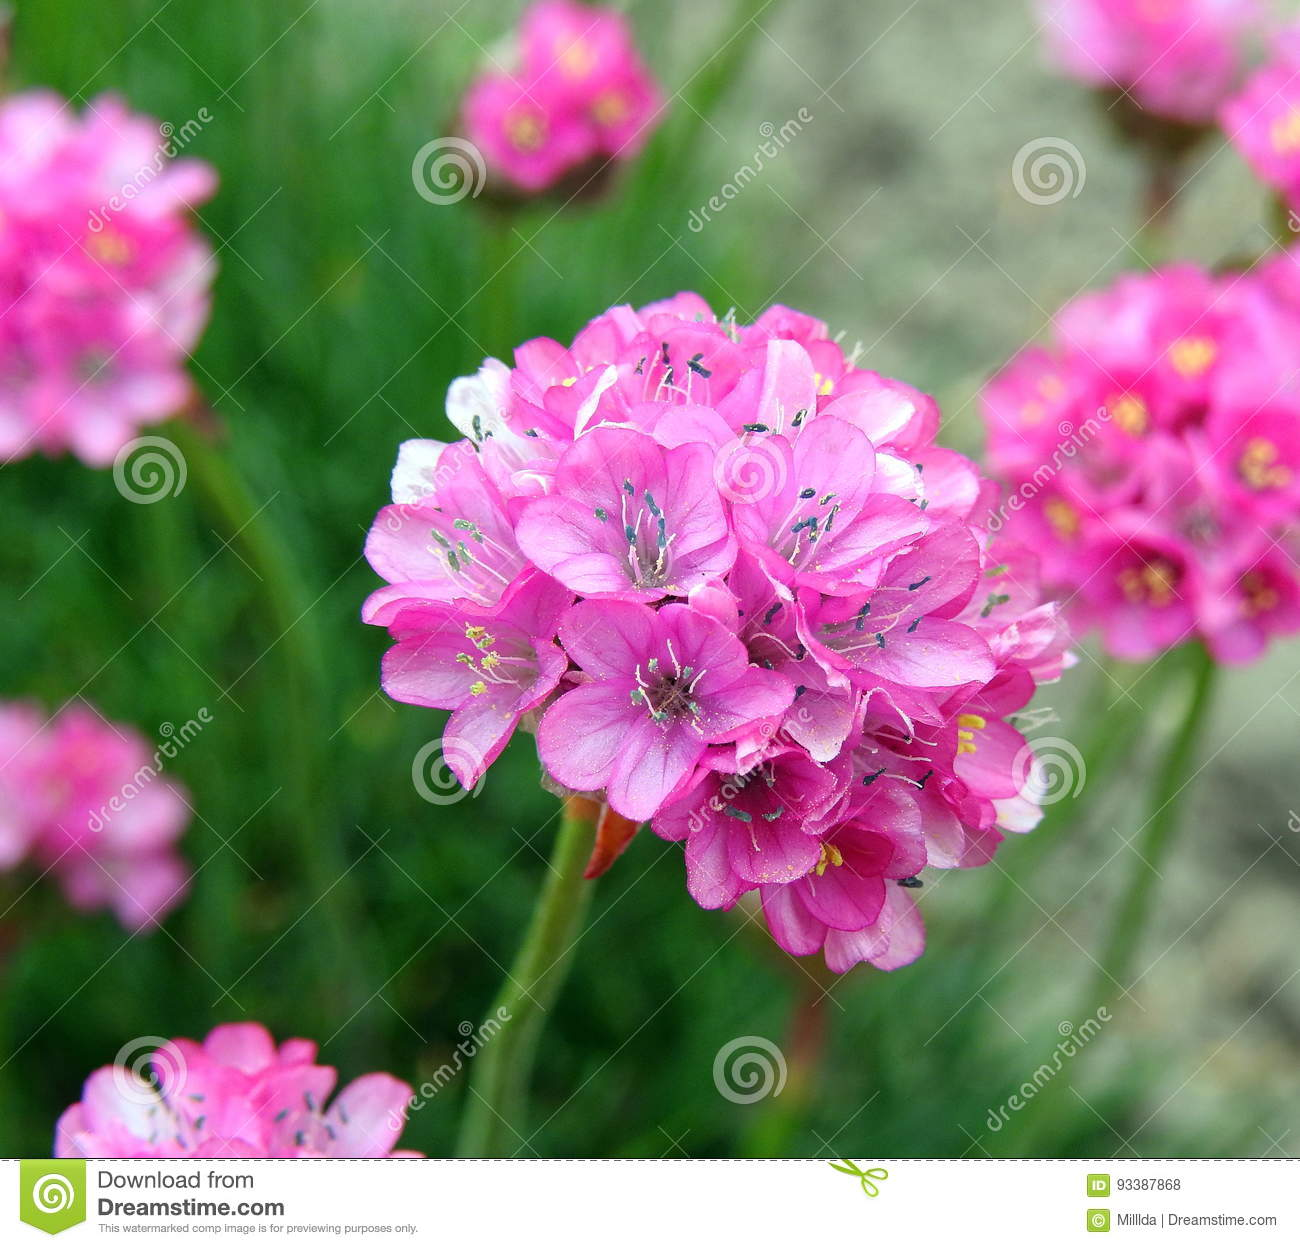 Pink Flowers Stock Photo Image Of Flower Leaf Flowers 93387868